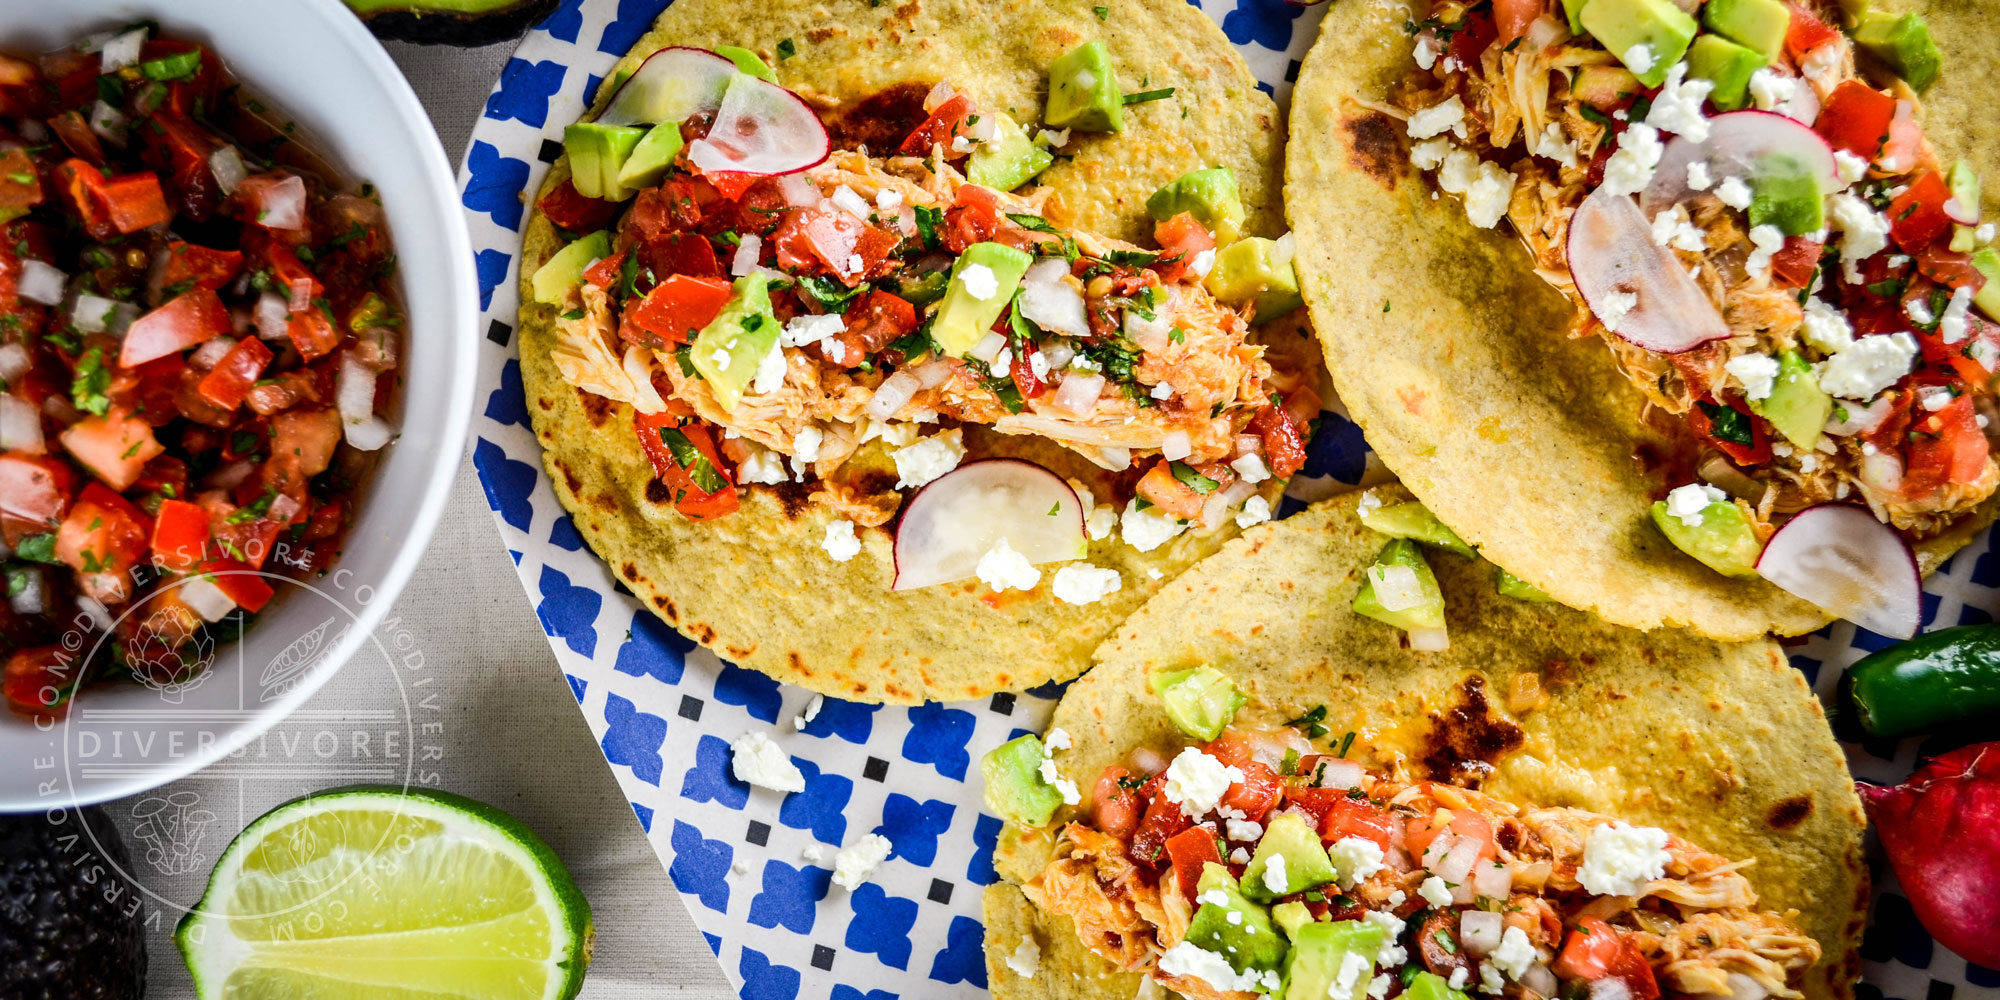 Chicken tinga, served as tacos with pico de gallo, avocadoes and cheese - Diversivore.com